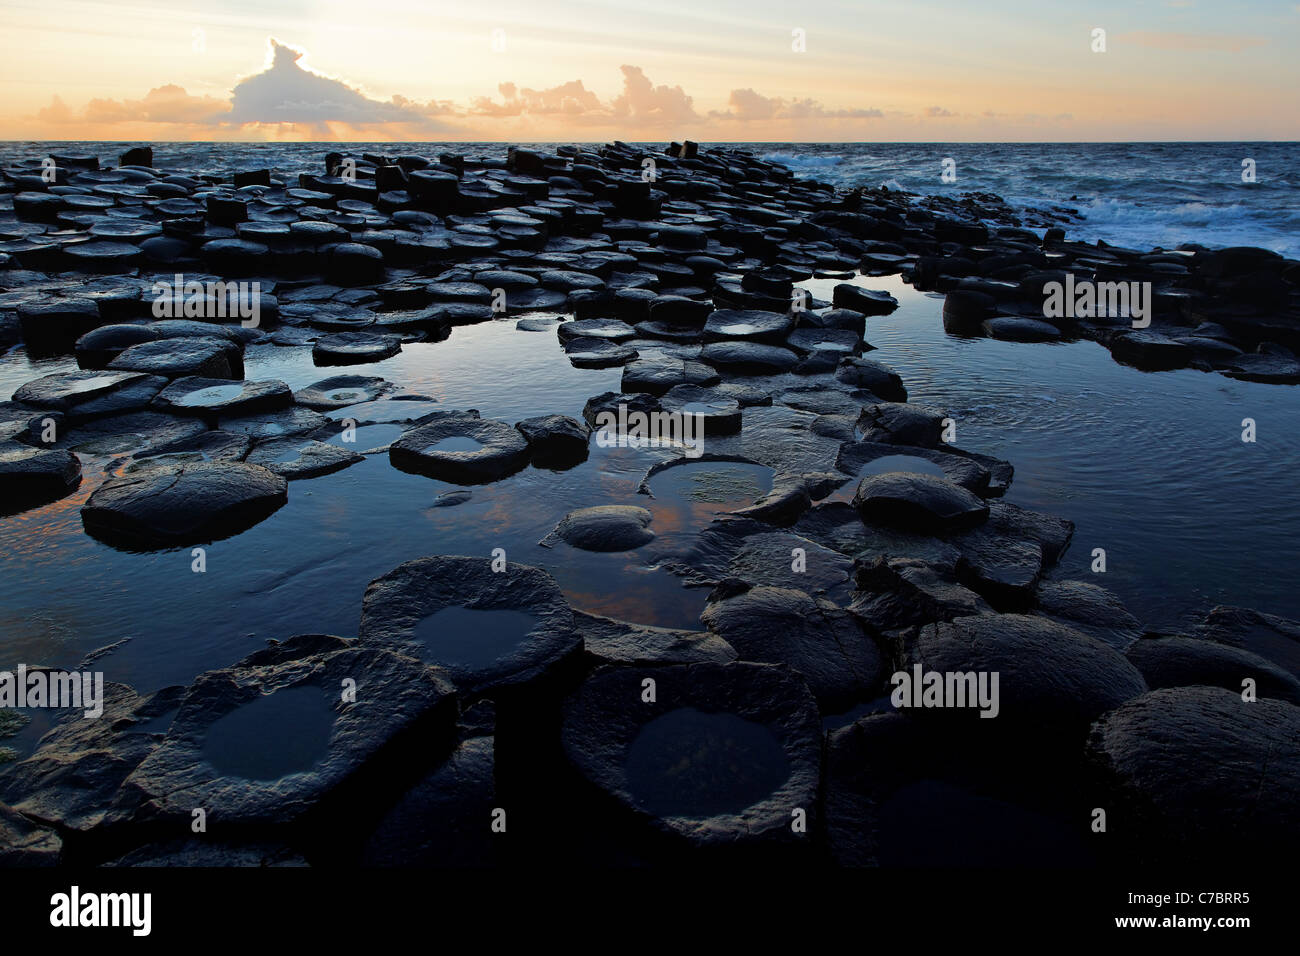 Partially submerged basalt columns at Giant's Causeway near sunset, County Antrim, Northern Ireland, United - Stock Image